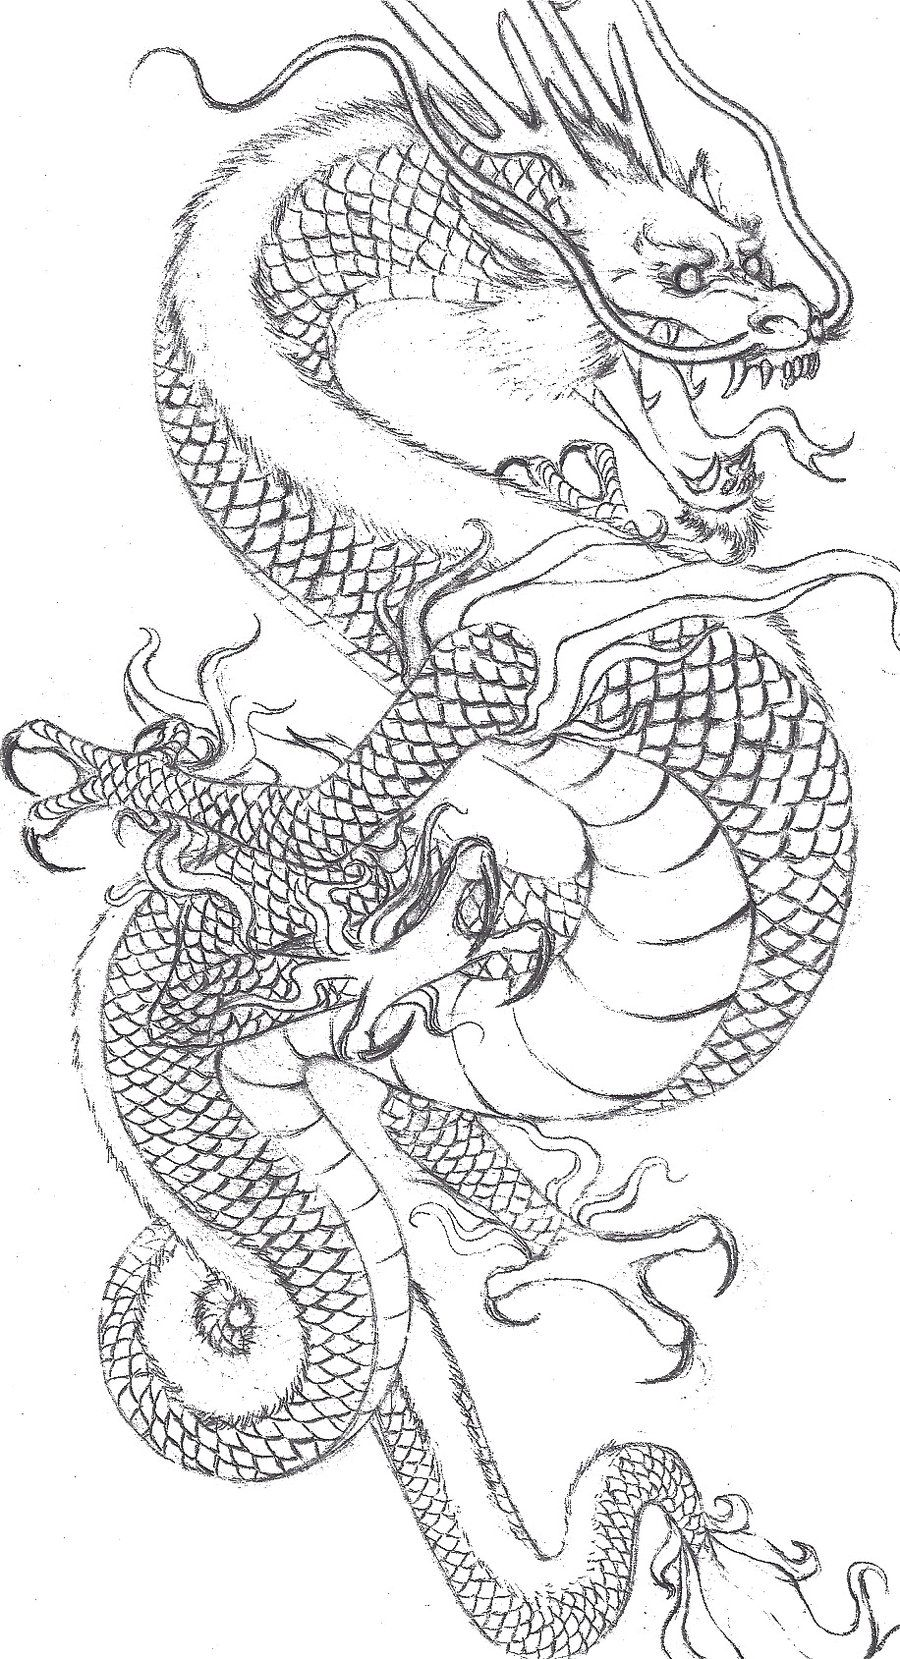 Japanese Tattoo Google Sogning Japanese Tattoo Japanese Dragon Tattoos Dragon Tattoo